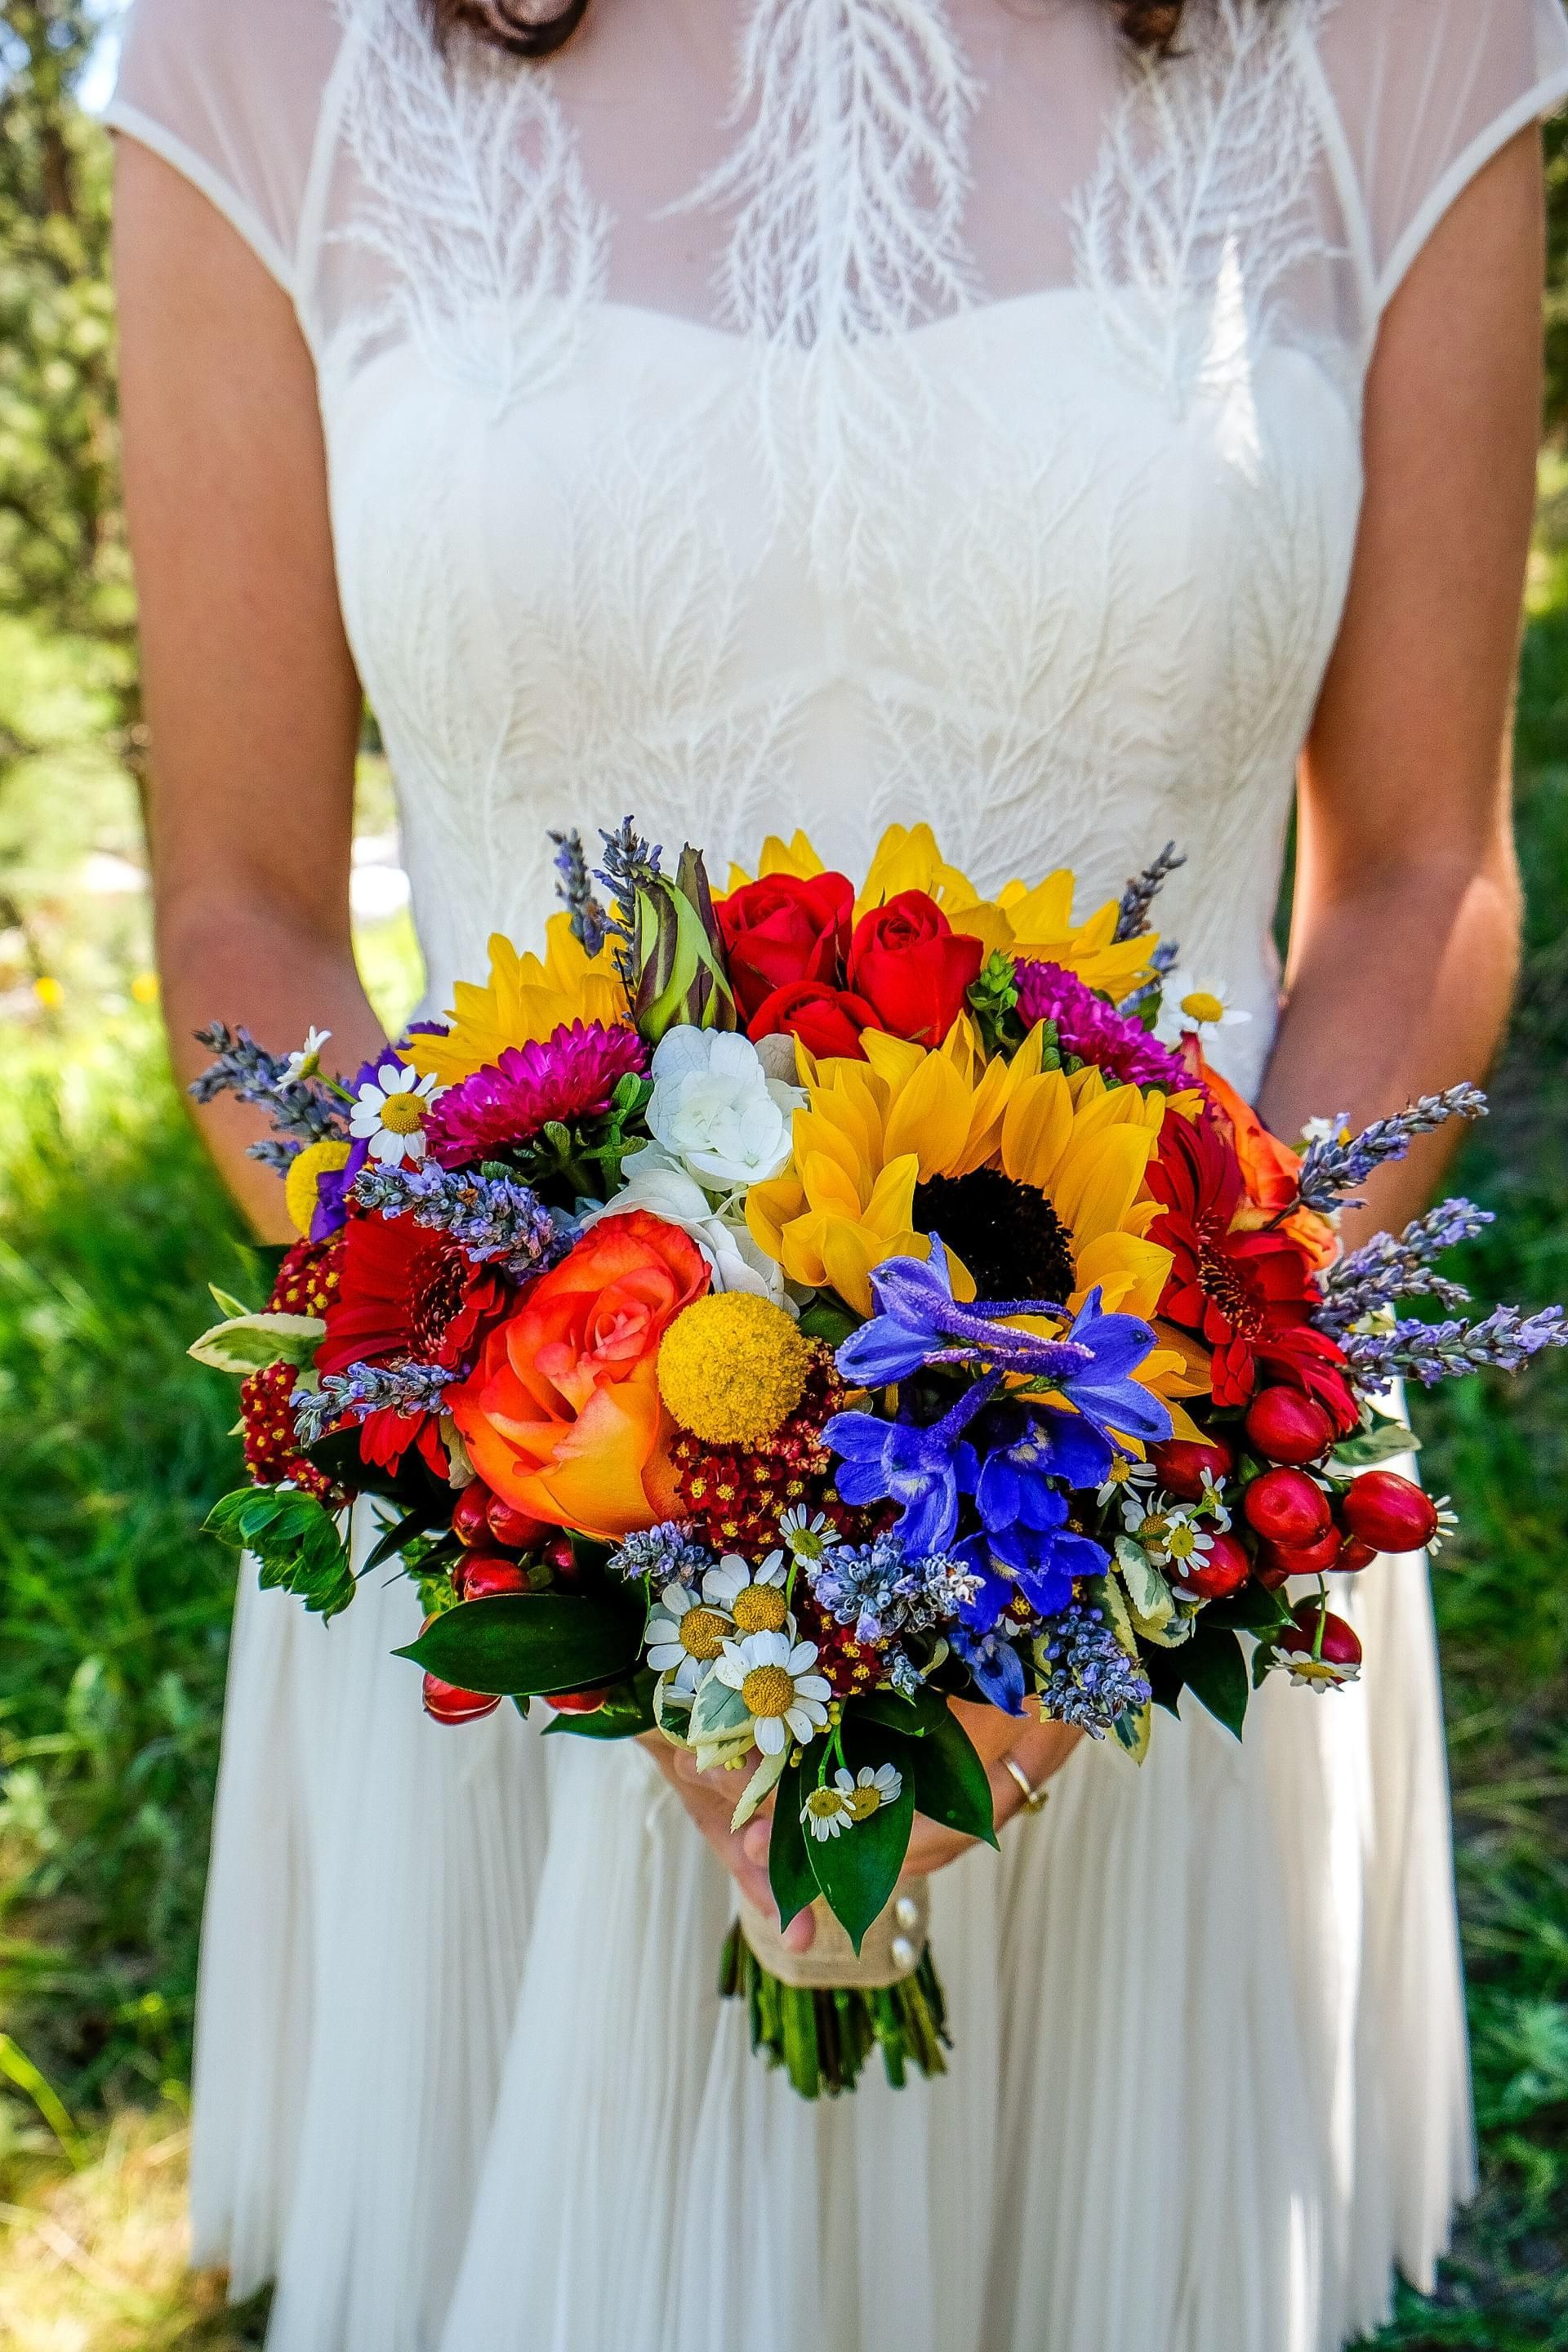 The Perfect Wedding Flowers for a SeasonThemed Wedding